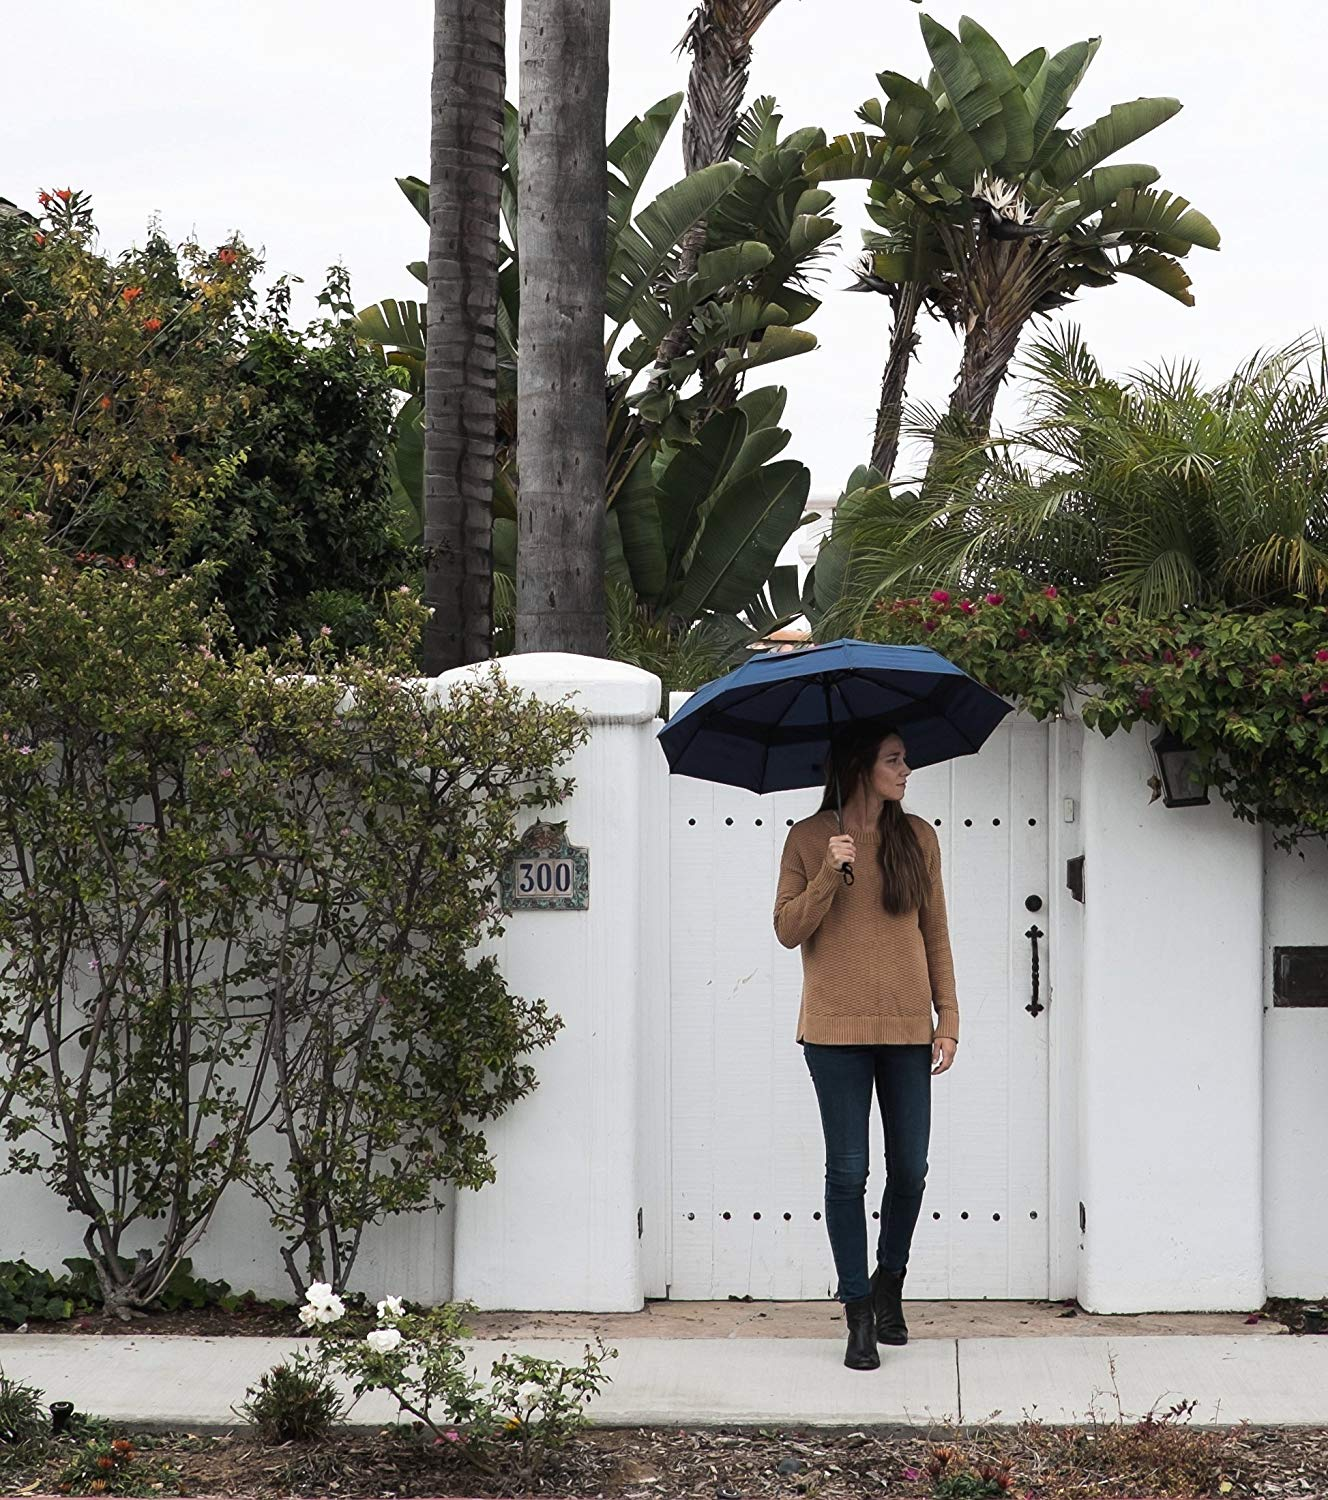 Best Mini Umbrella for Travel in 2020   Reviews & Buyer's Guide